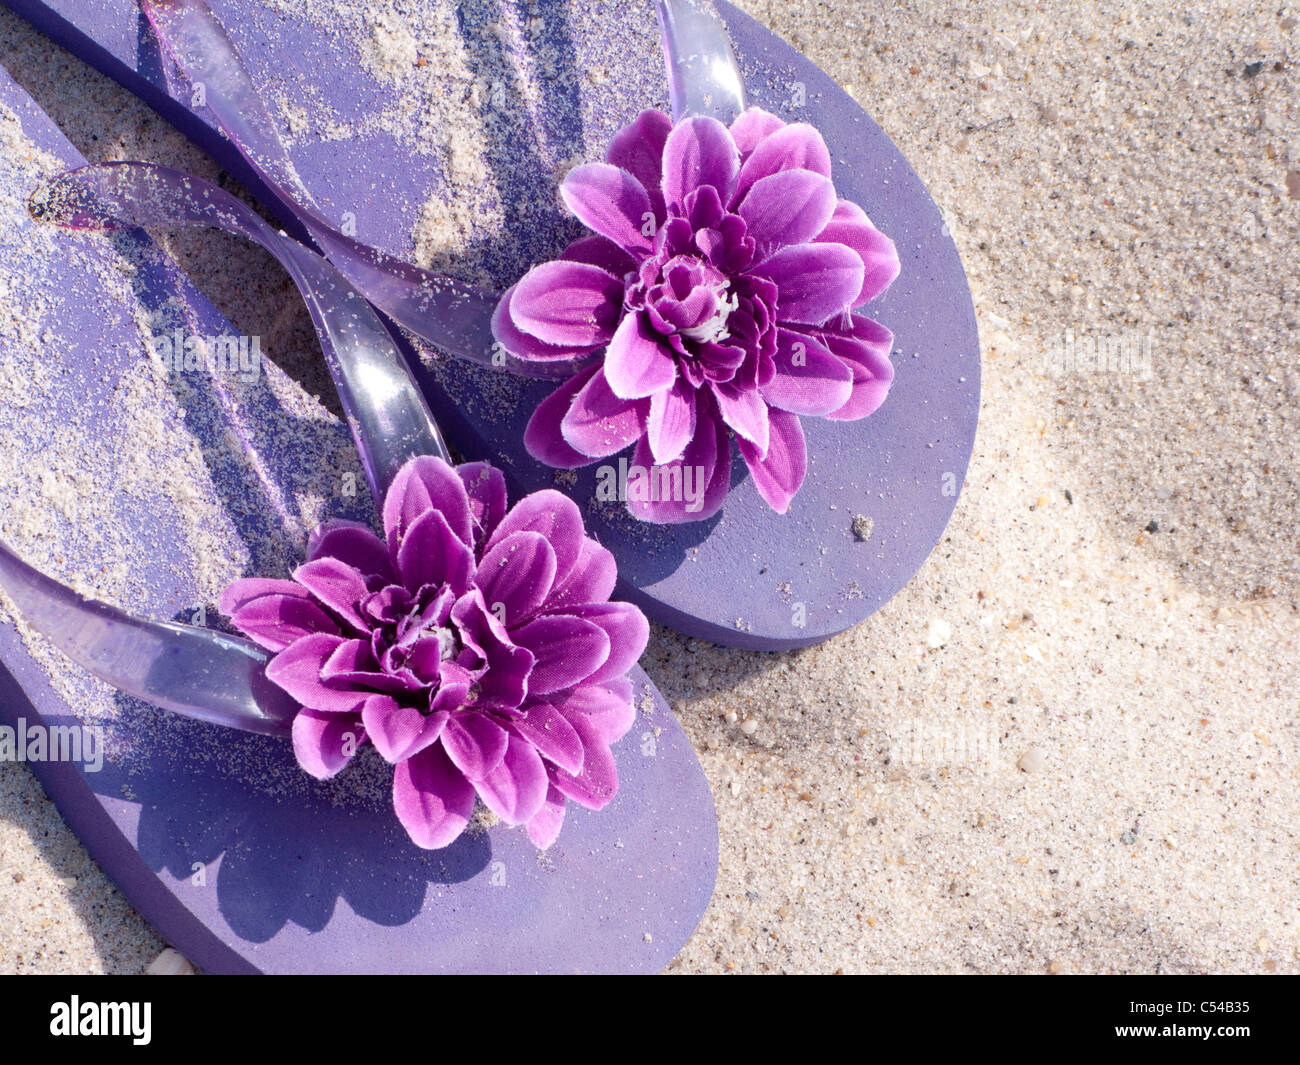 ladies flowered sandals on white sand beach - Stock Image